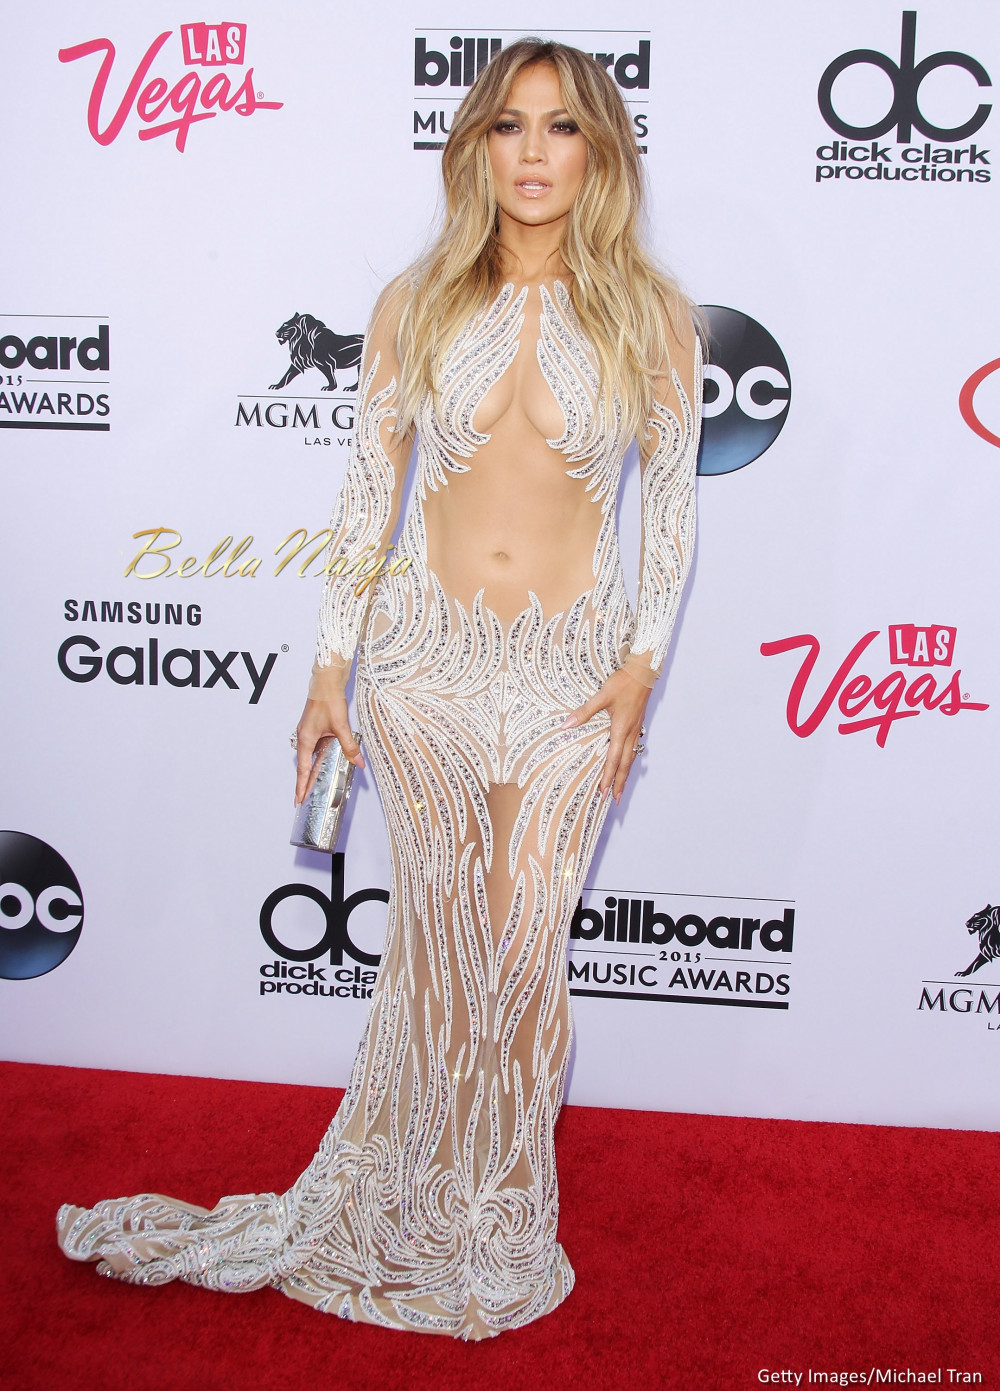 the 2015 billboard music awards held yesterday at mgm grand garden